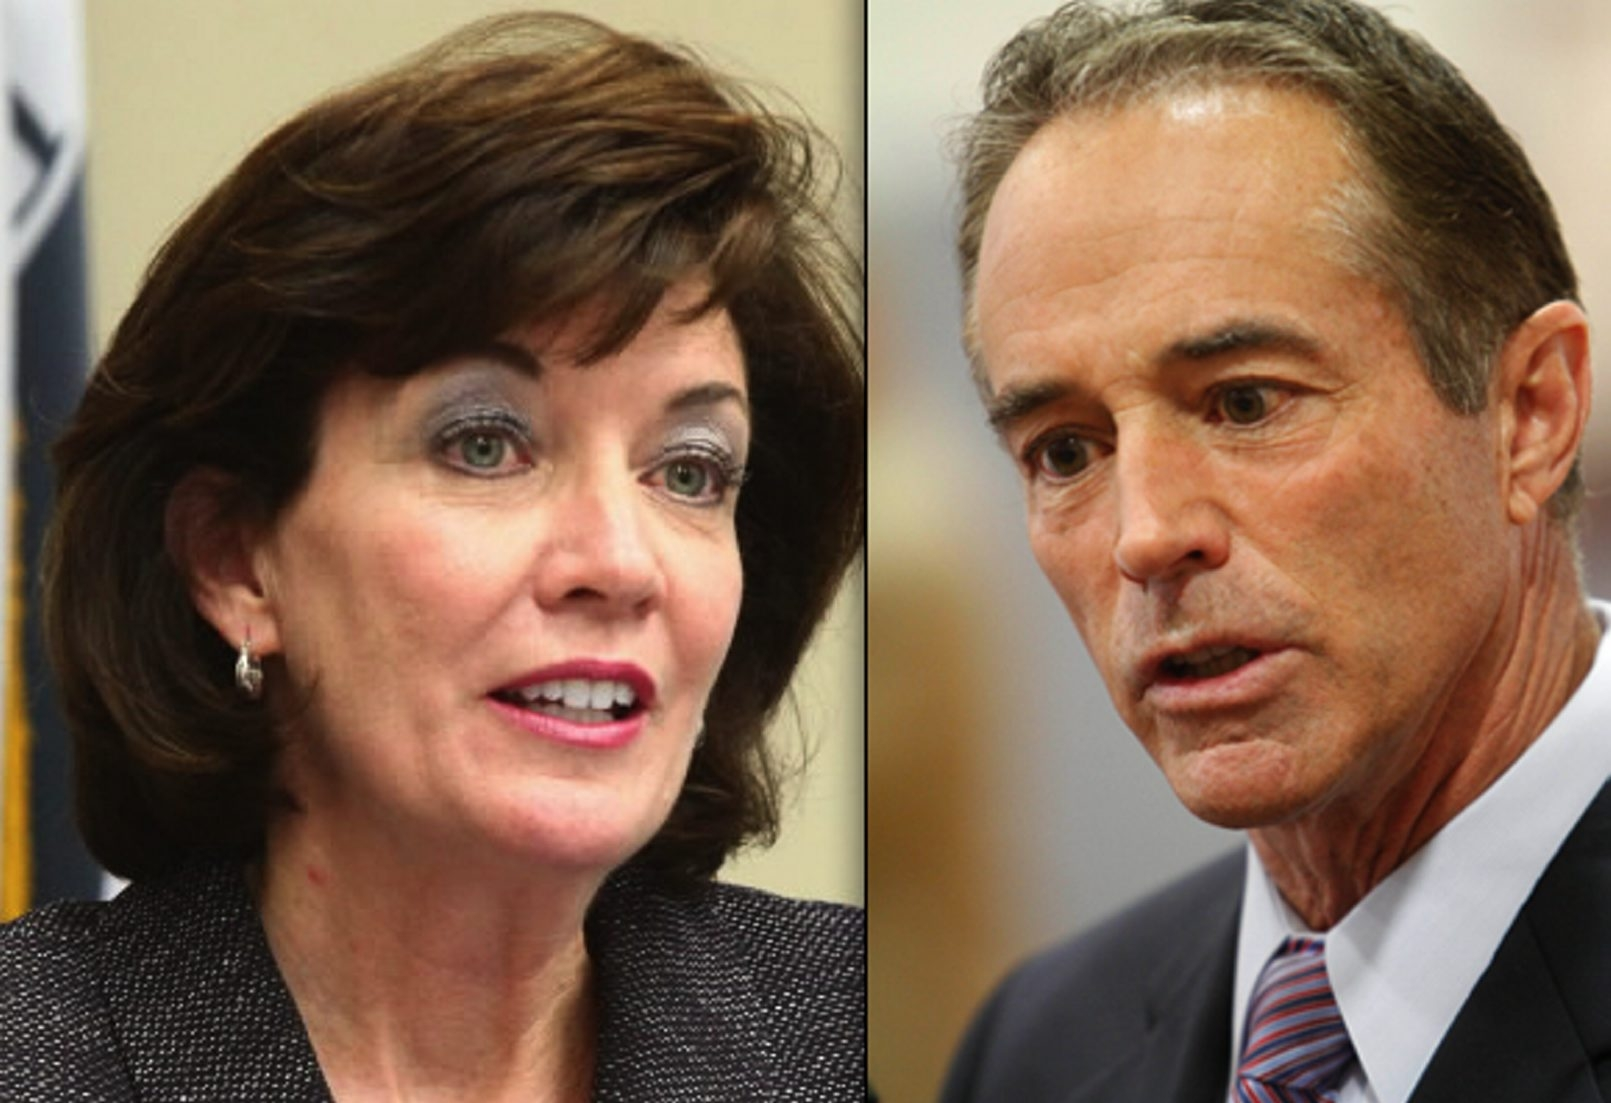 As they compete for congressional seat, Rep. Kathleen C. Hochul and Chris Collins address their legacies regarding record-keeping and ECMC, respectively.